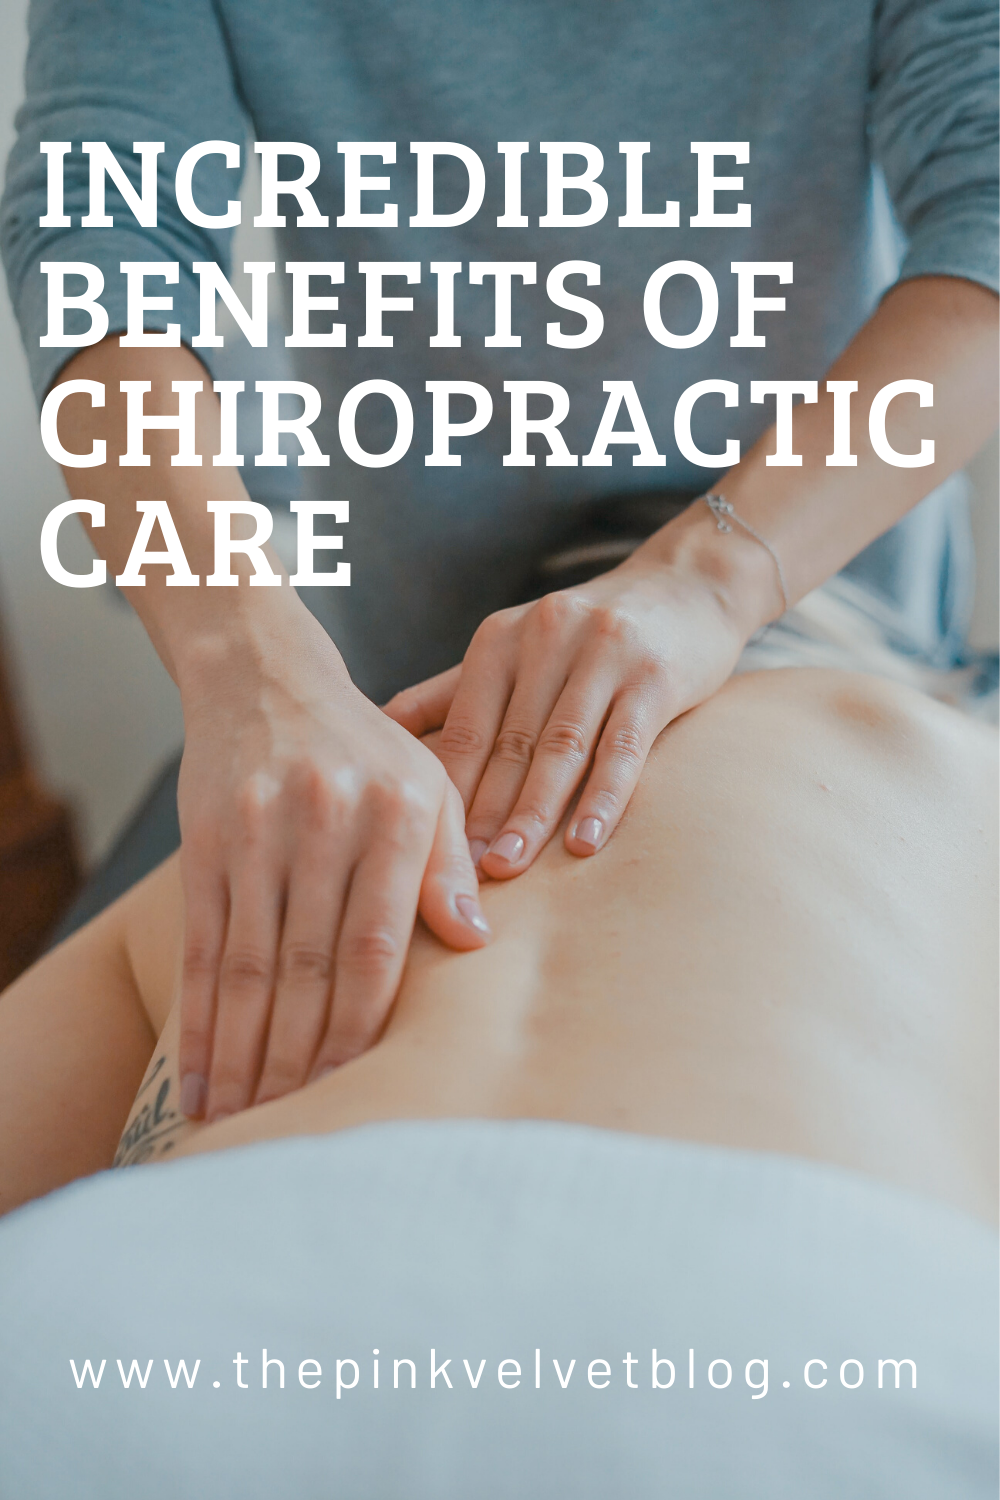 Incredible Benefits of Chiropractic Care that Makes It a Popular Choice